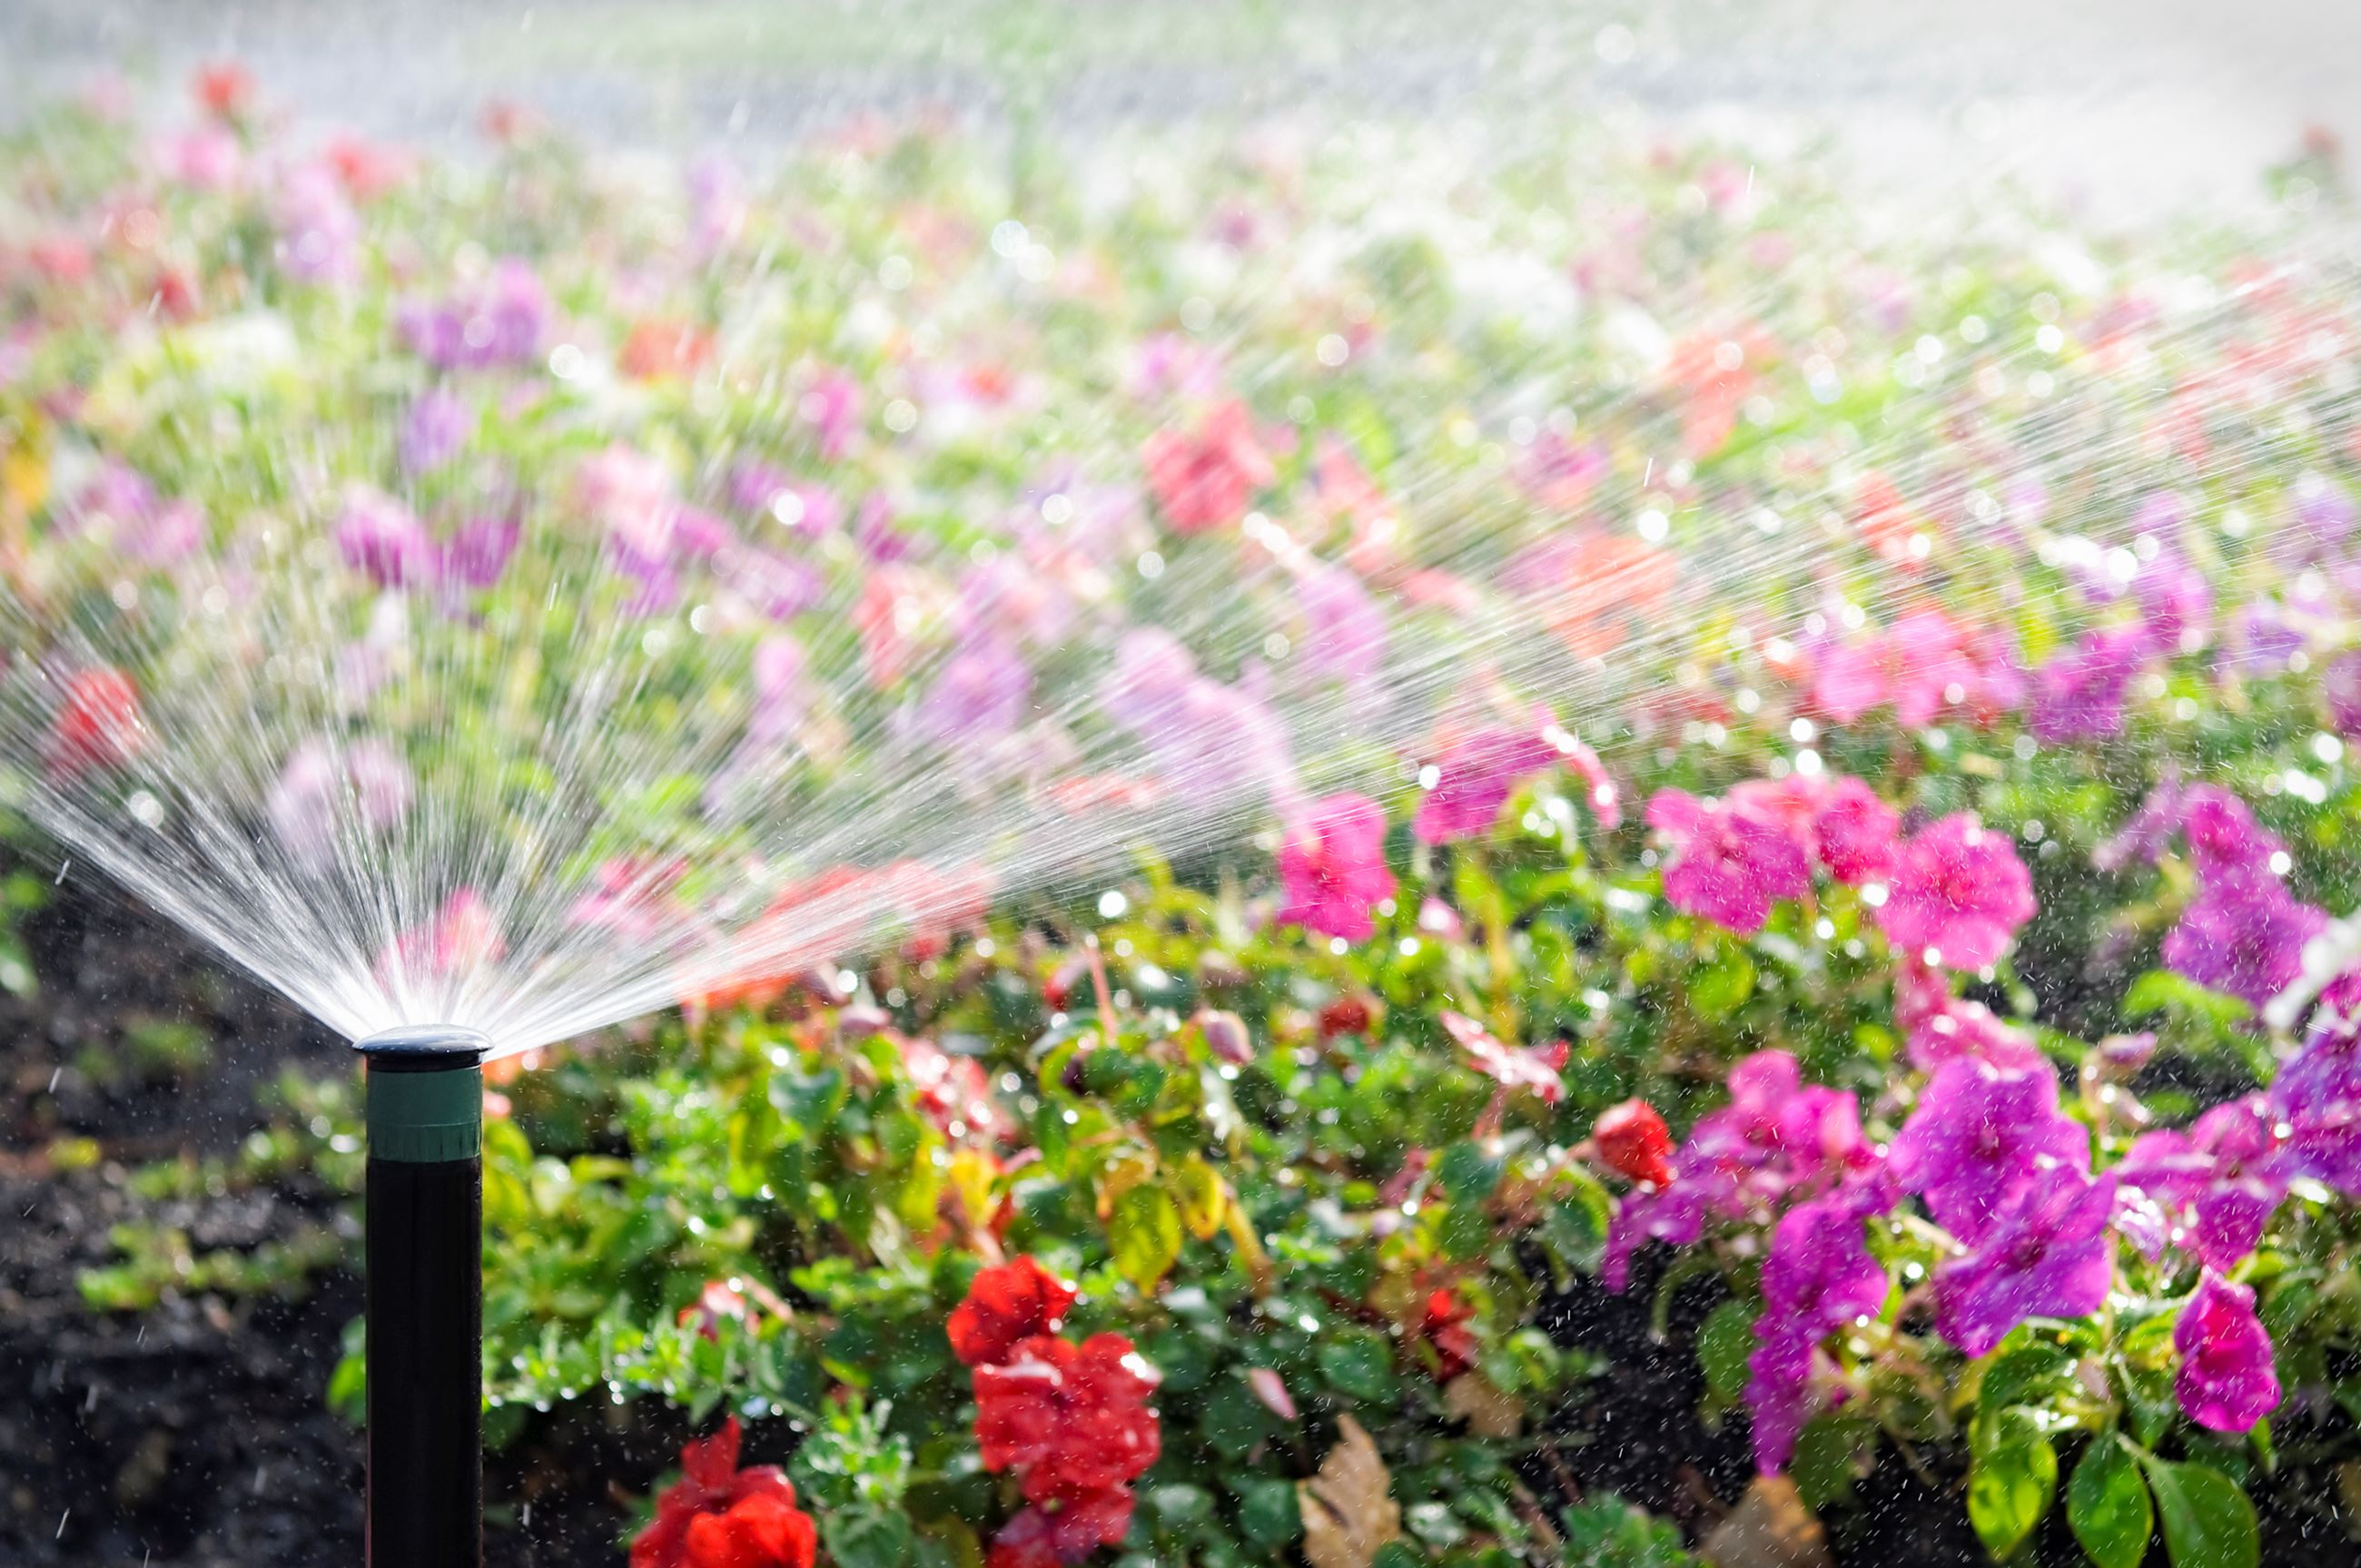 Sprinkler Flowers